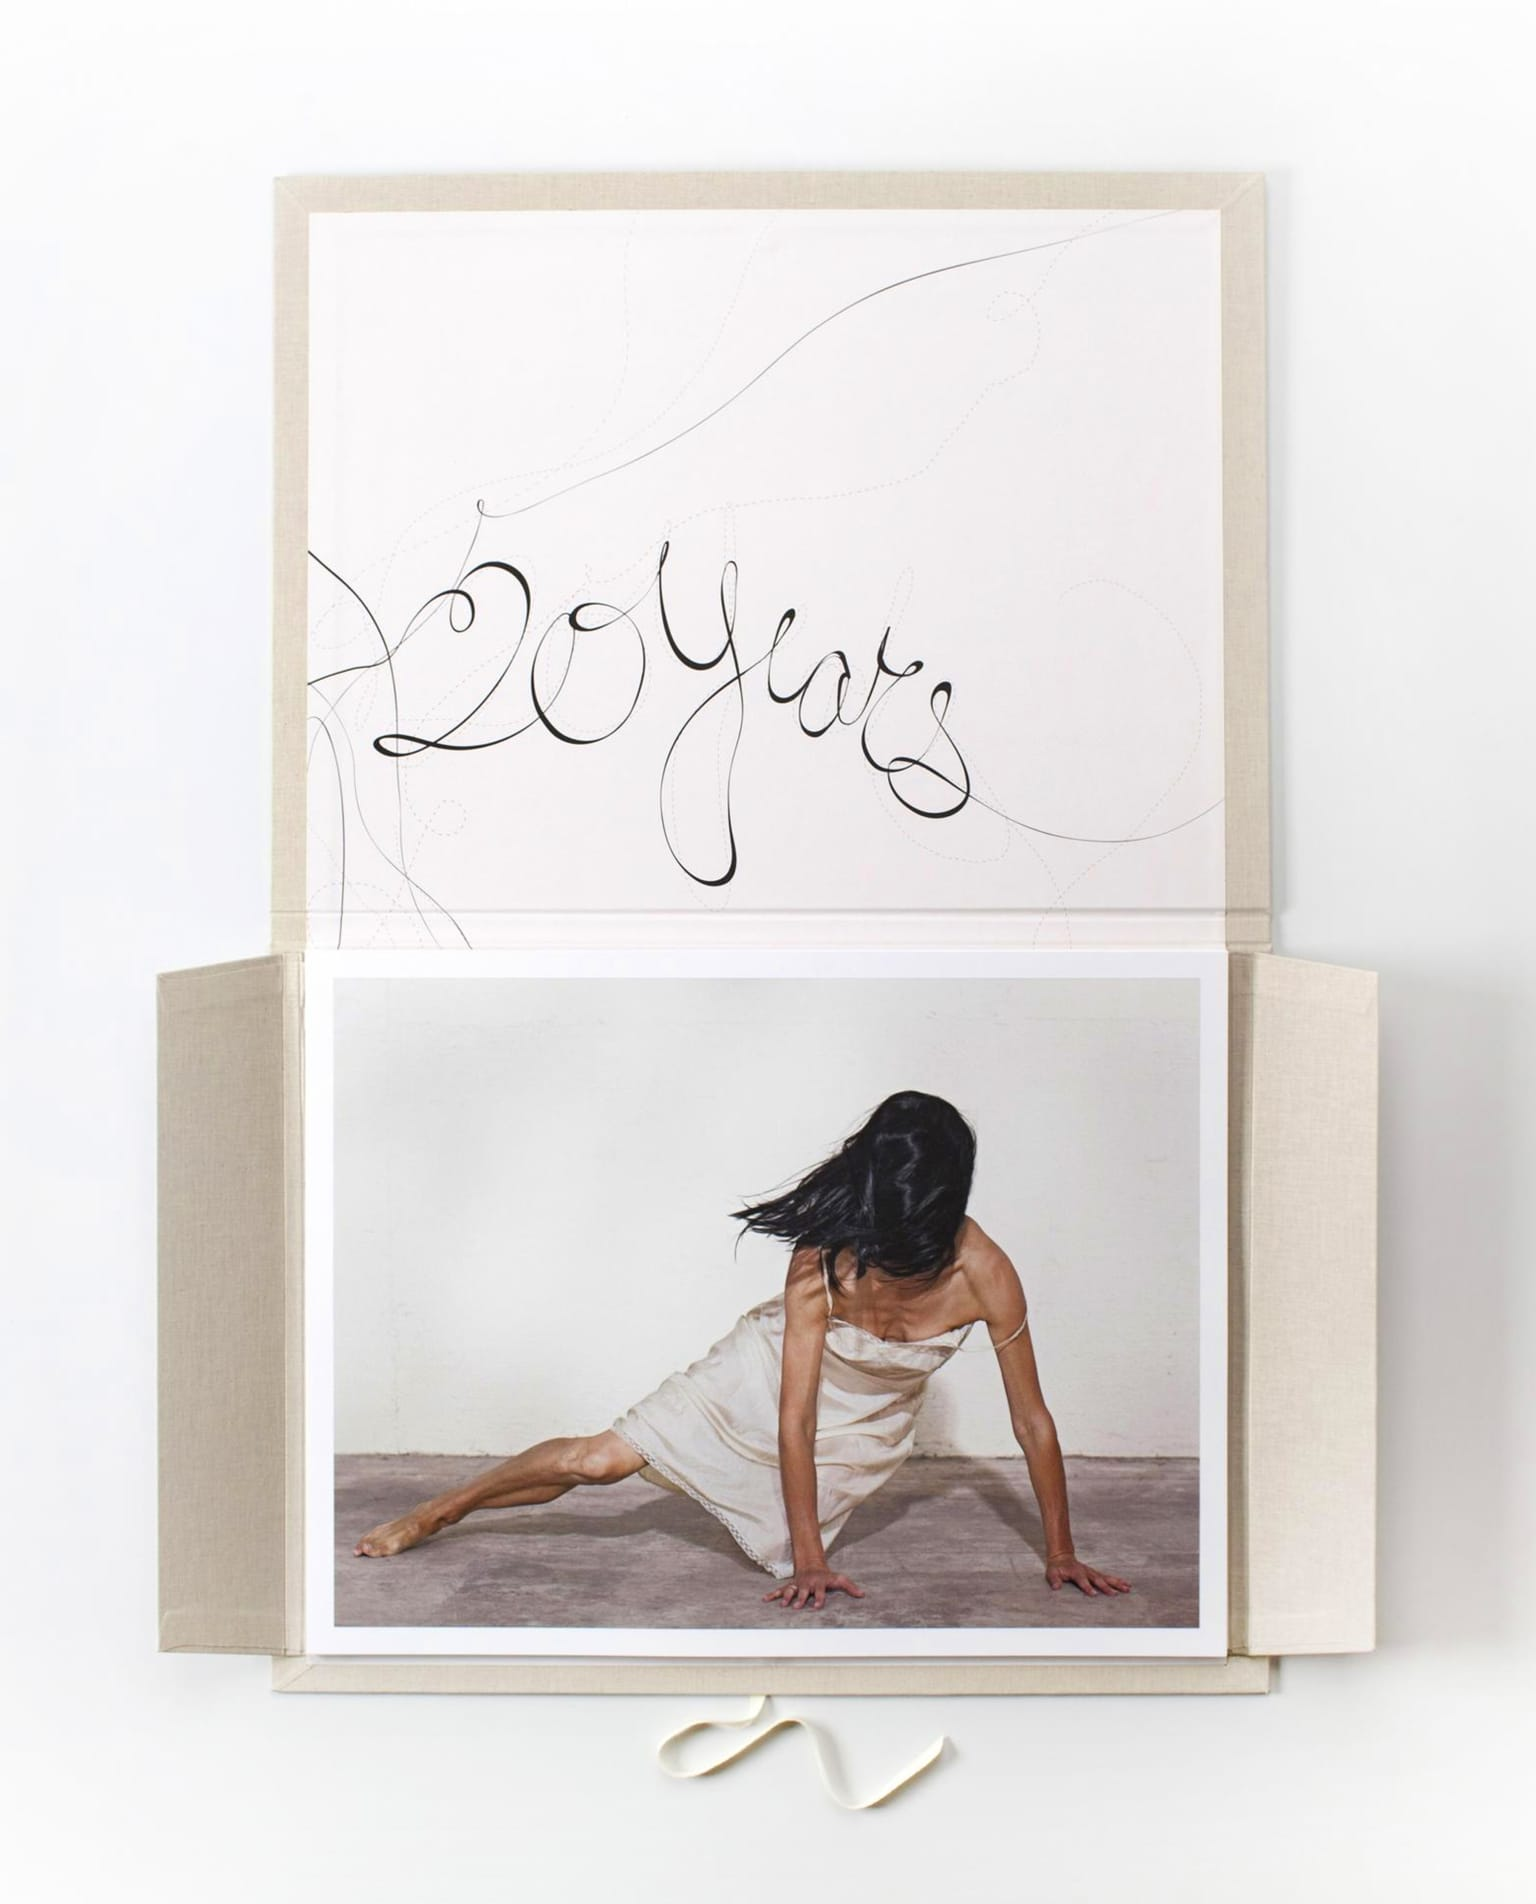 20 Years 20 Slips: Erica Tanov x Katy Grannan